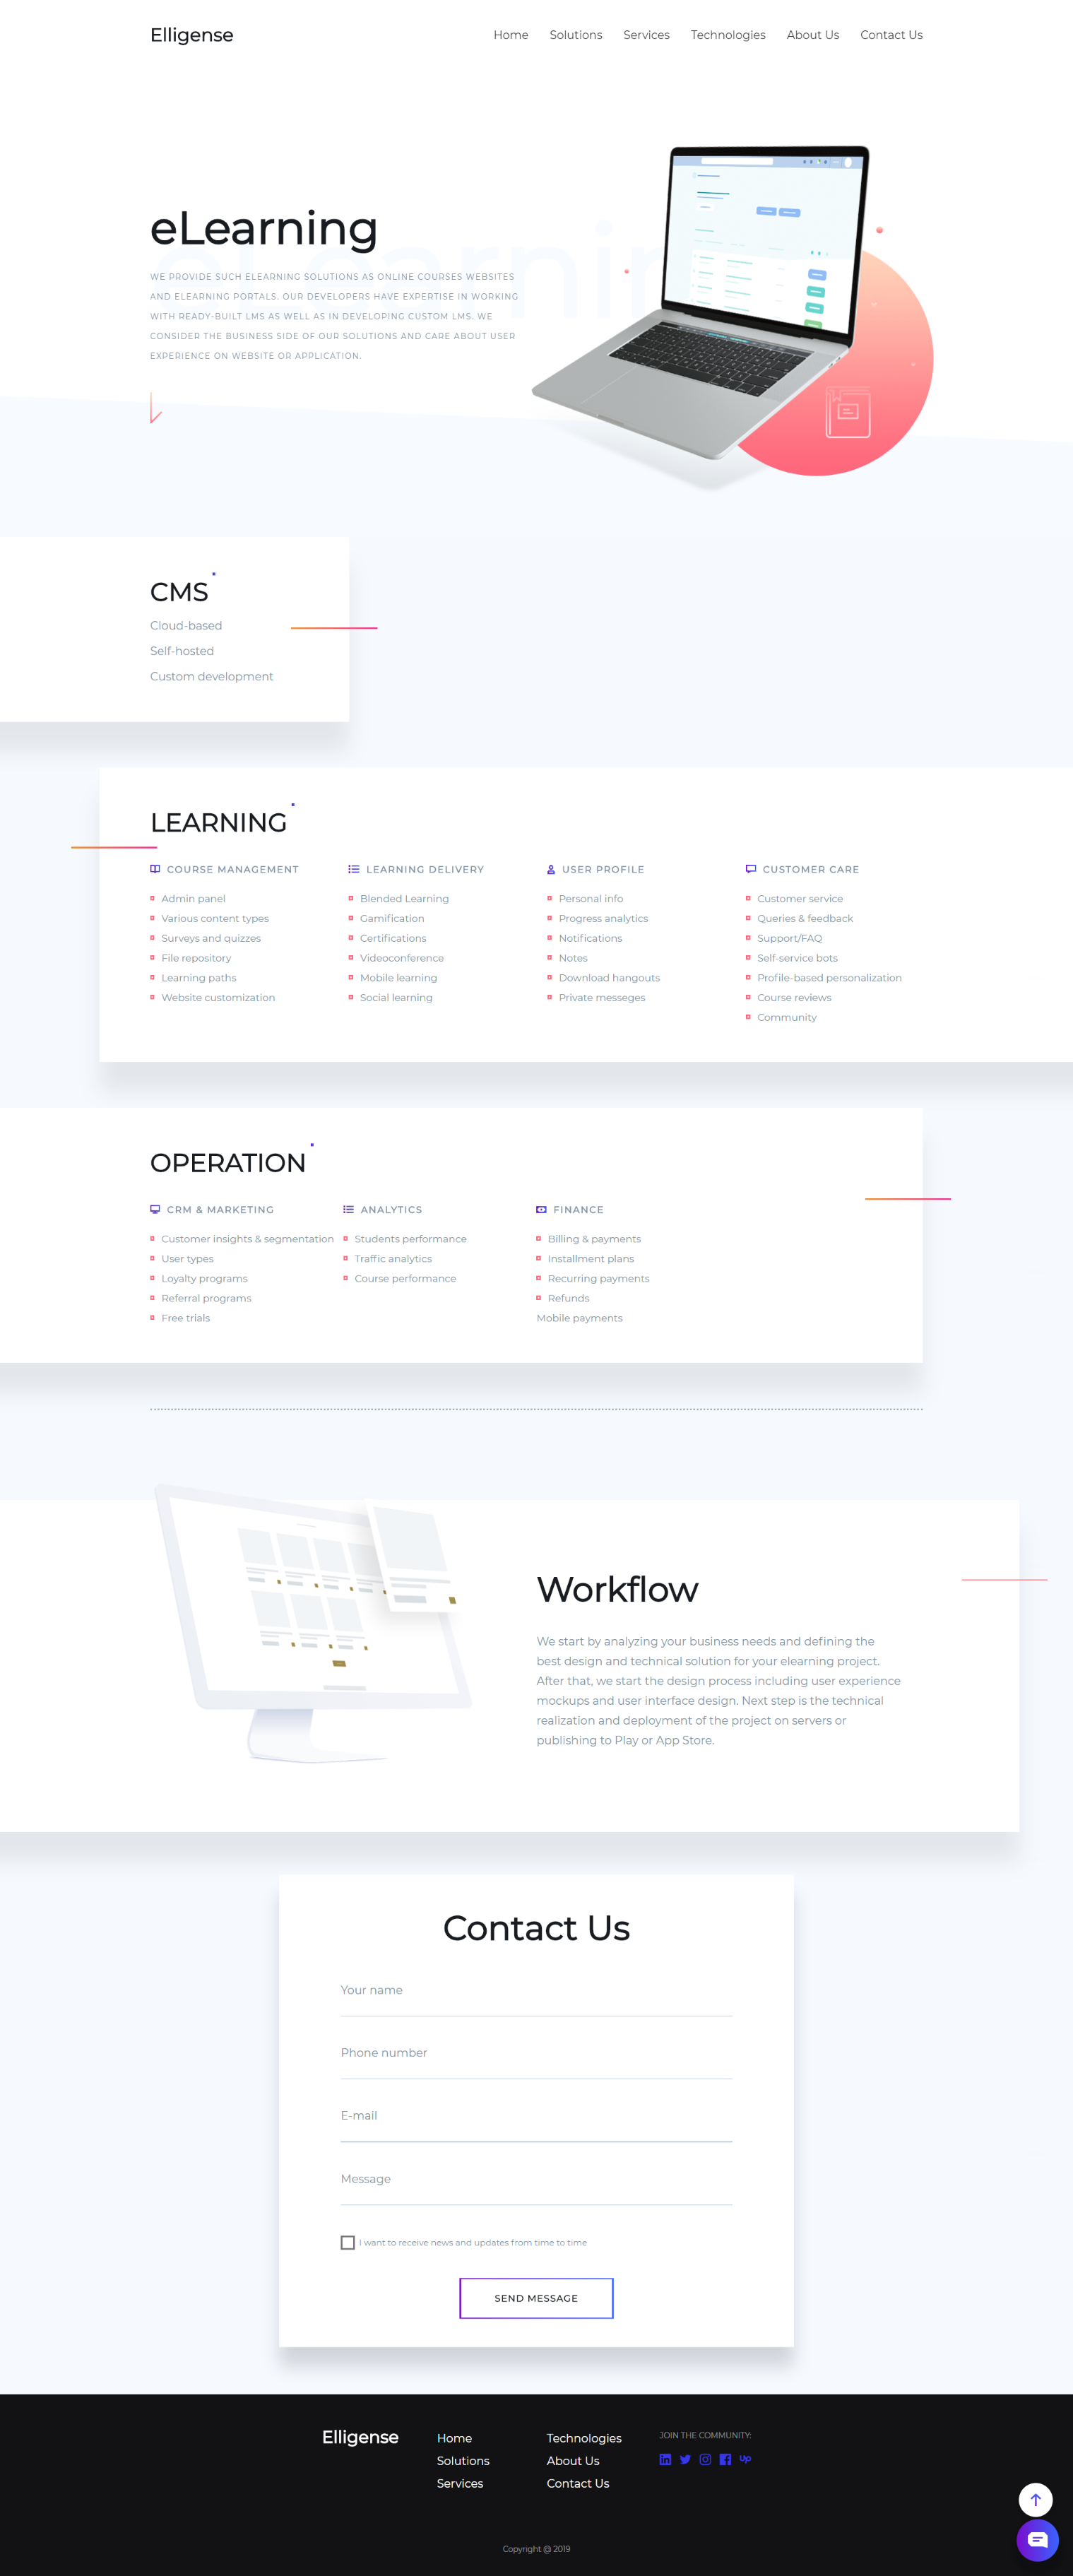 Modern Trendy And Fresh Elearning Solutions Page Web Design Inspiration Material Design Website Corporate Website Design Web Design Quotes